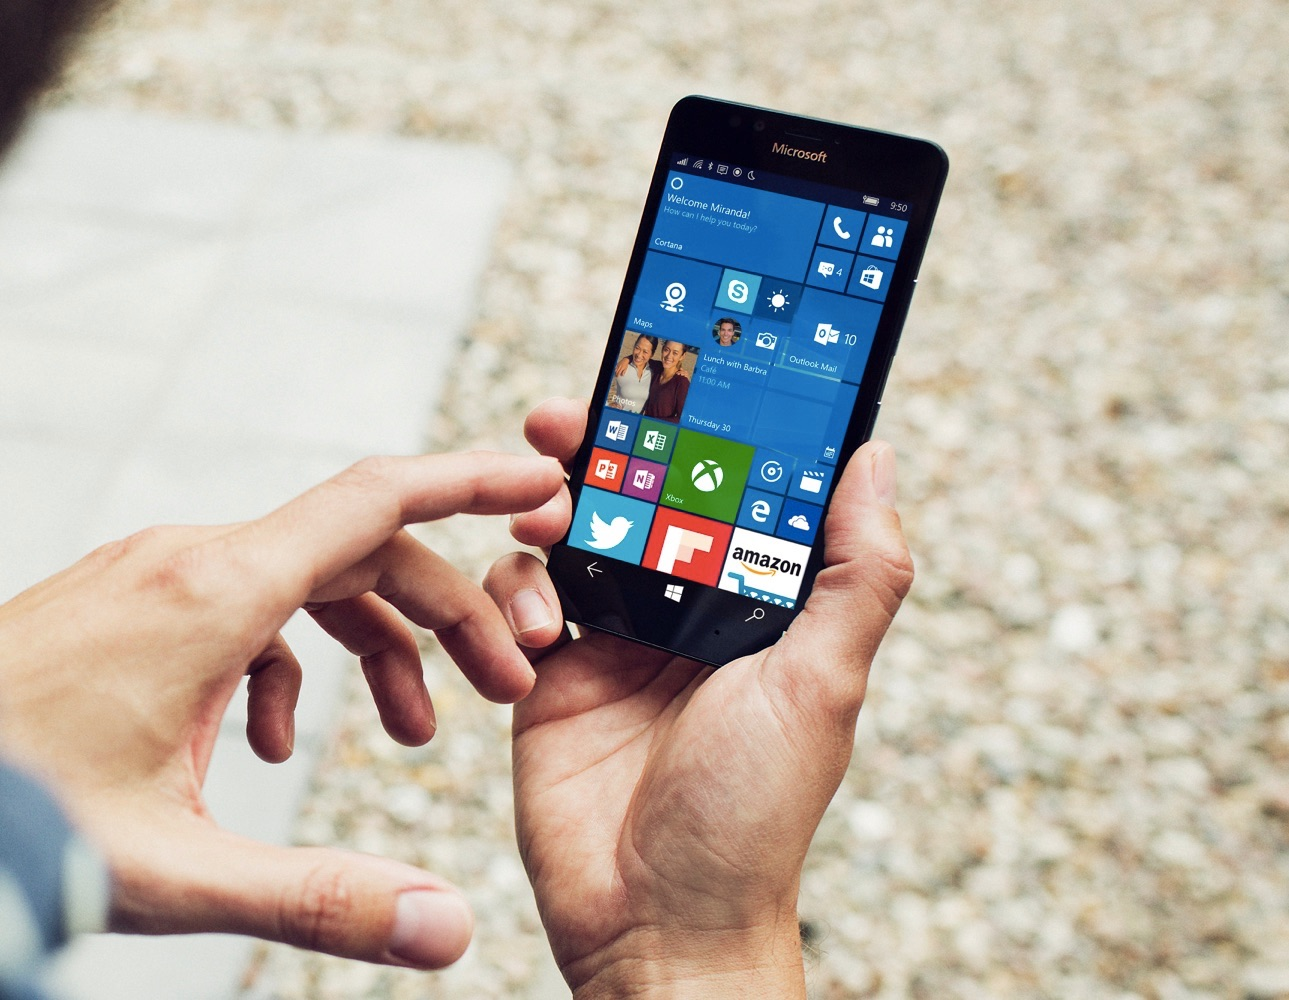 Important information about HERE apps on Windows Phone